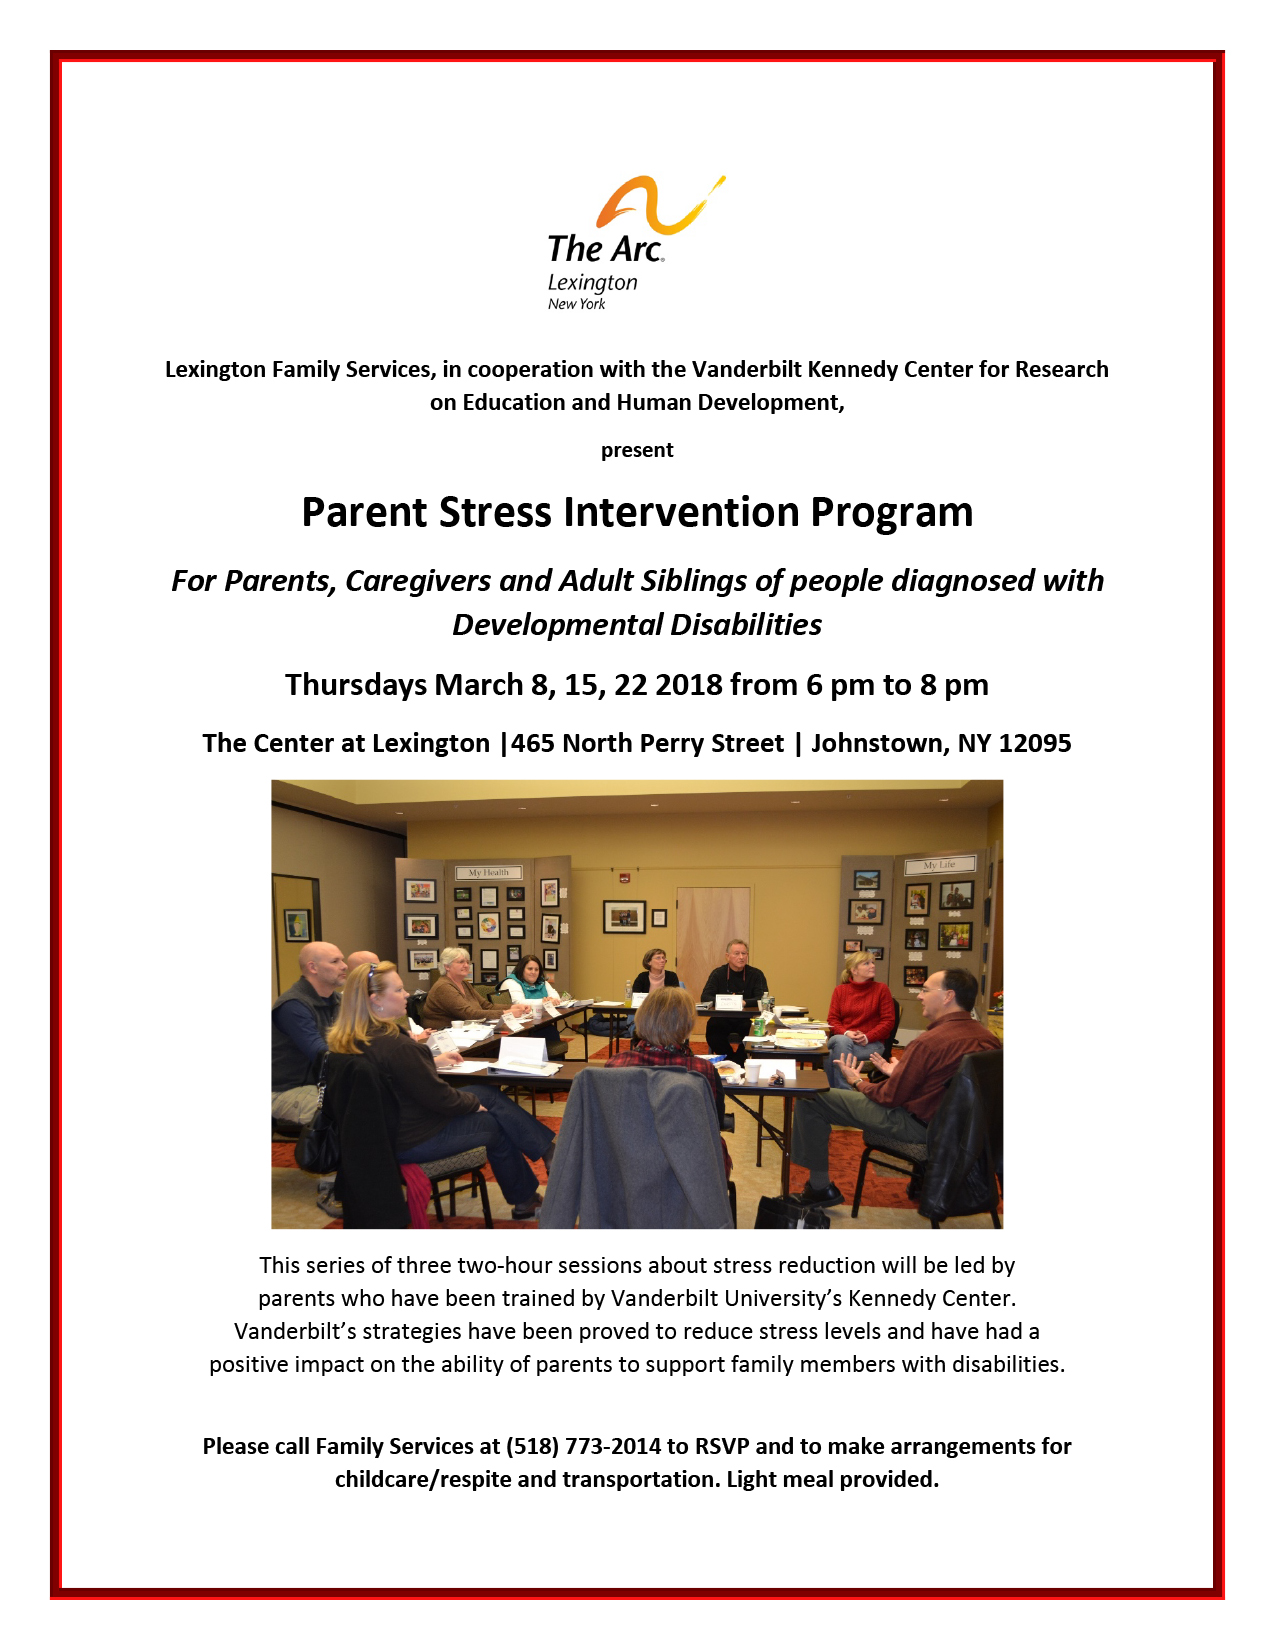 Parent Stress Intervention Program flier 2018.jpg